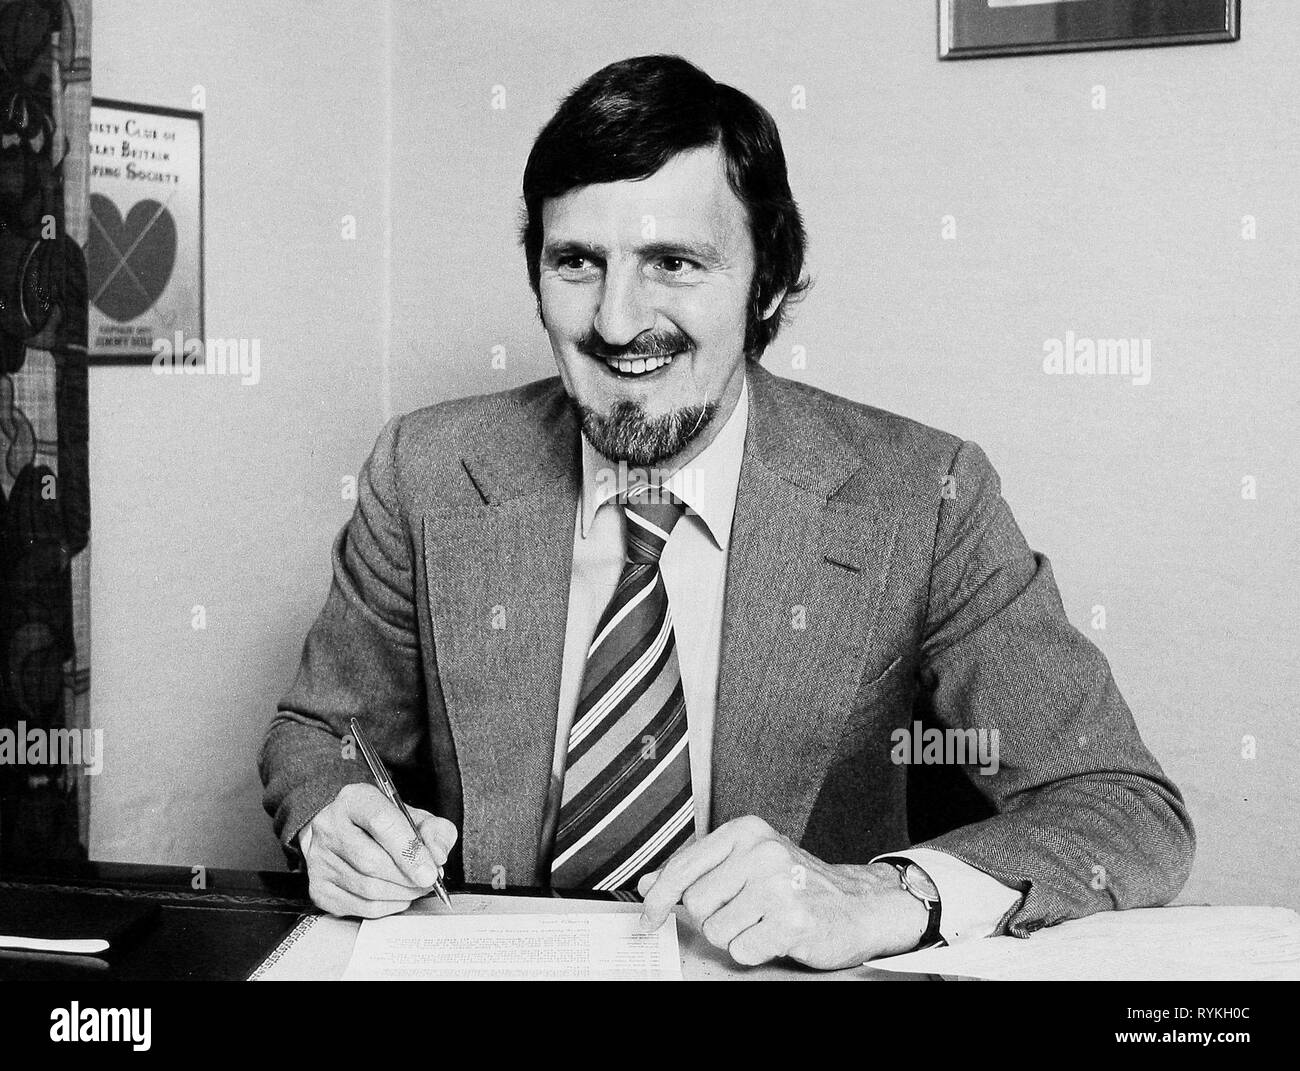 JIMMY HILL, MATCH OF THE DAY, 1973 Stock Photo